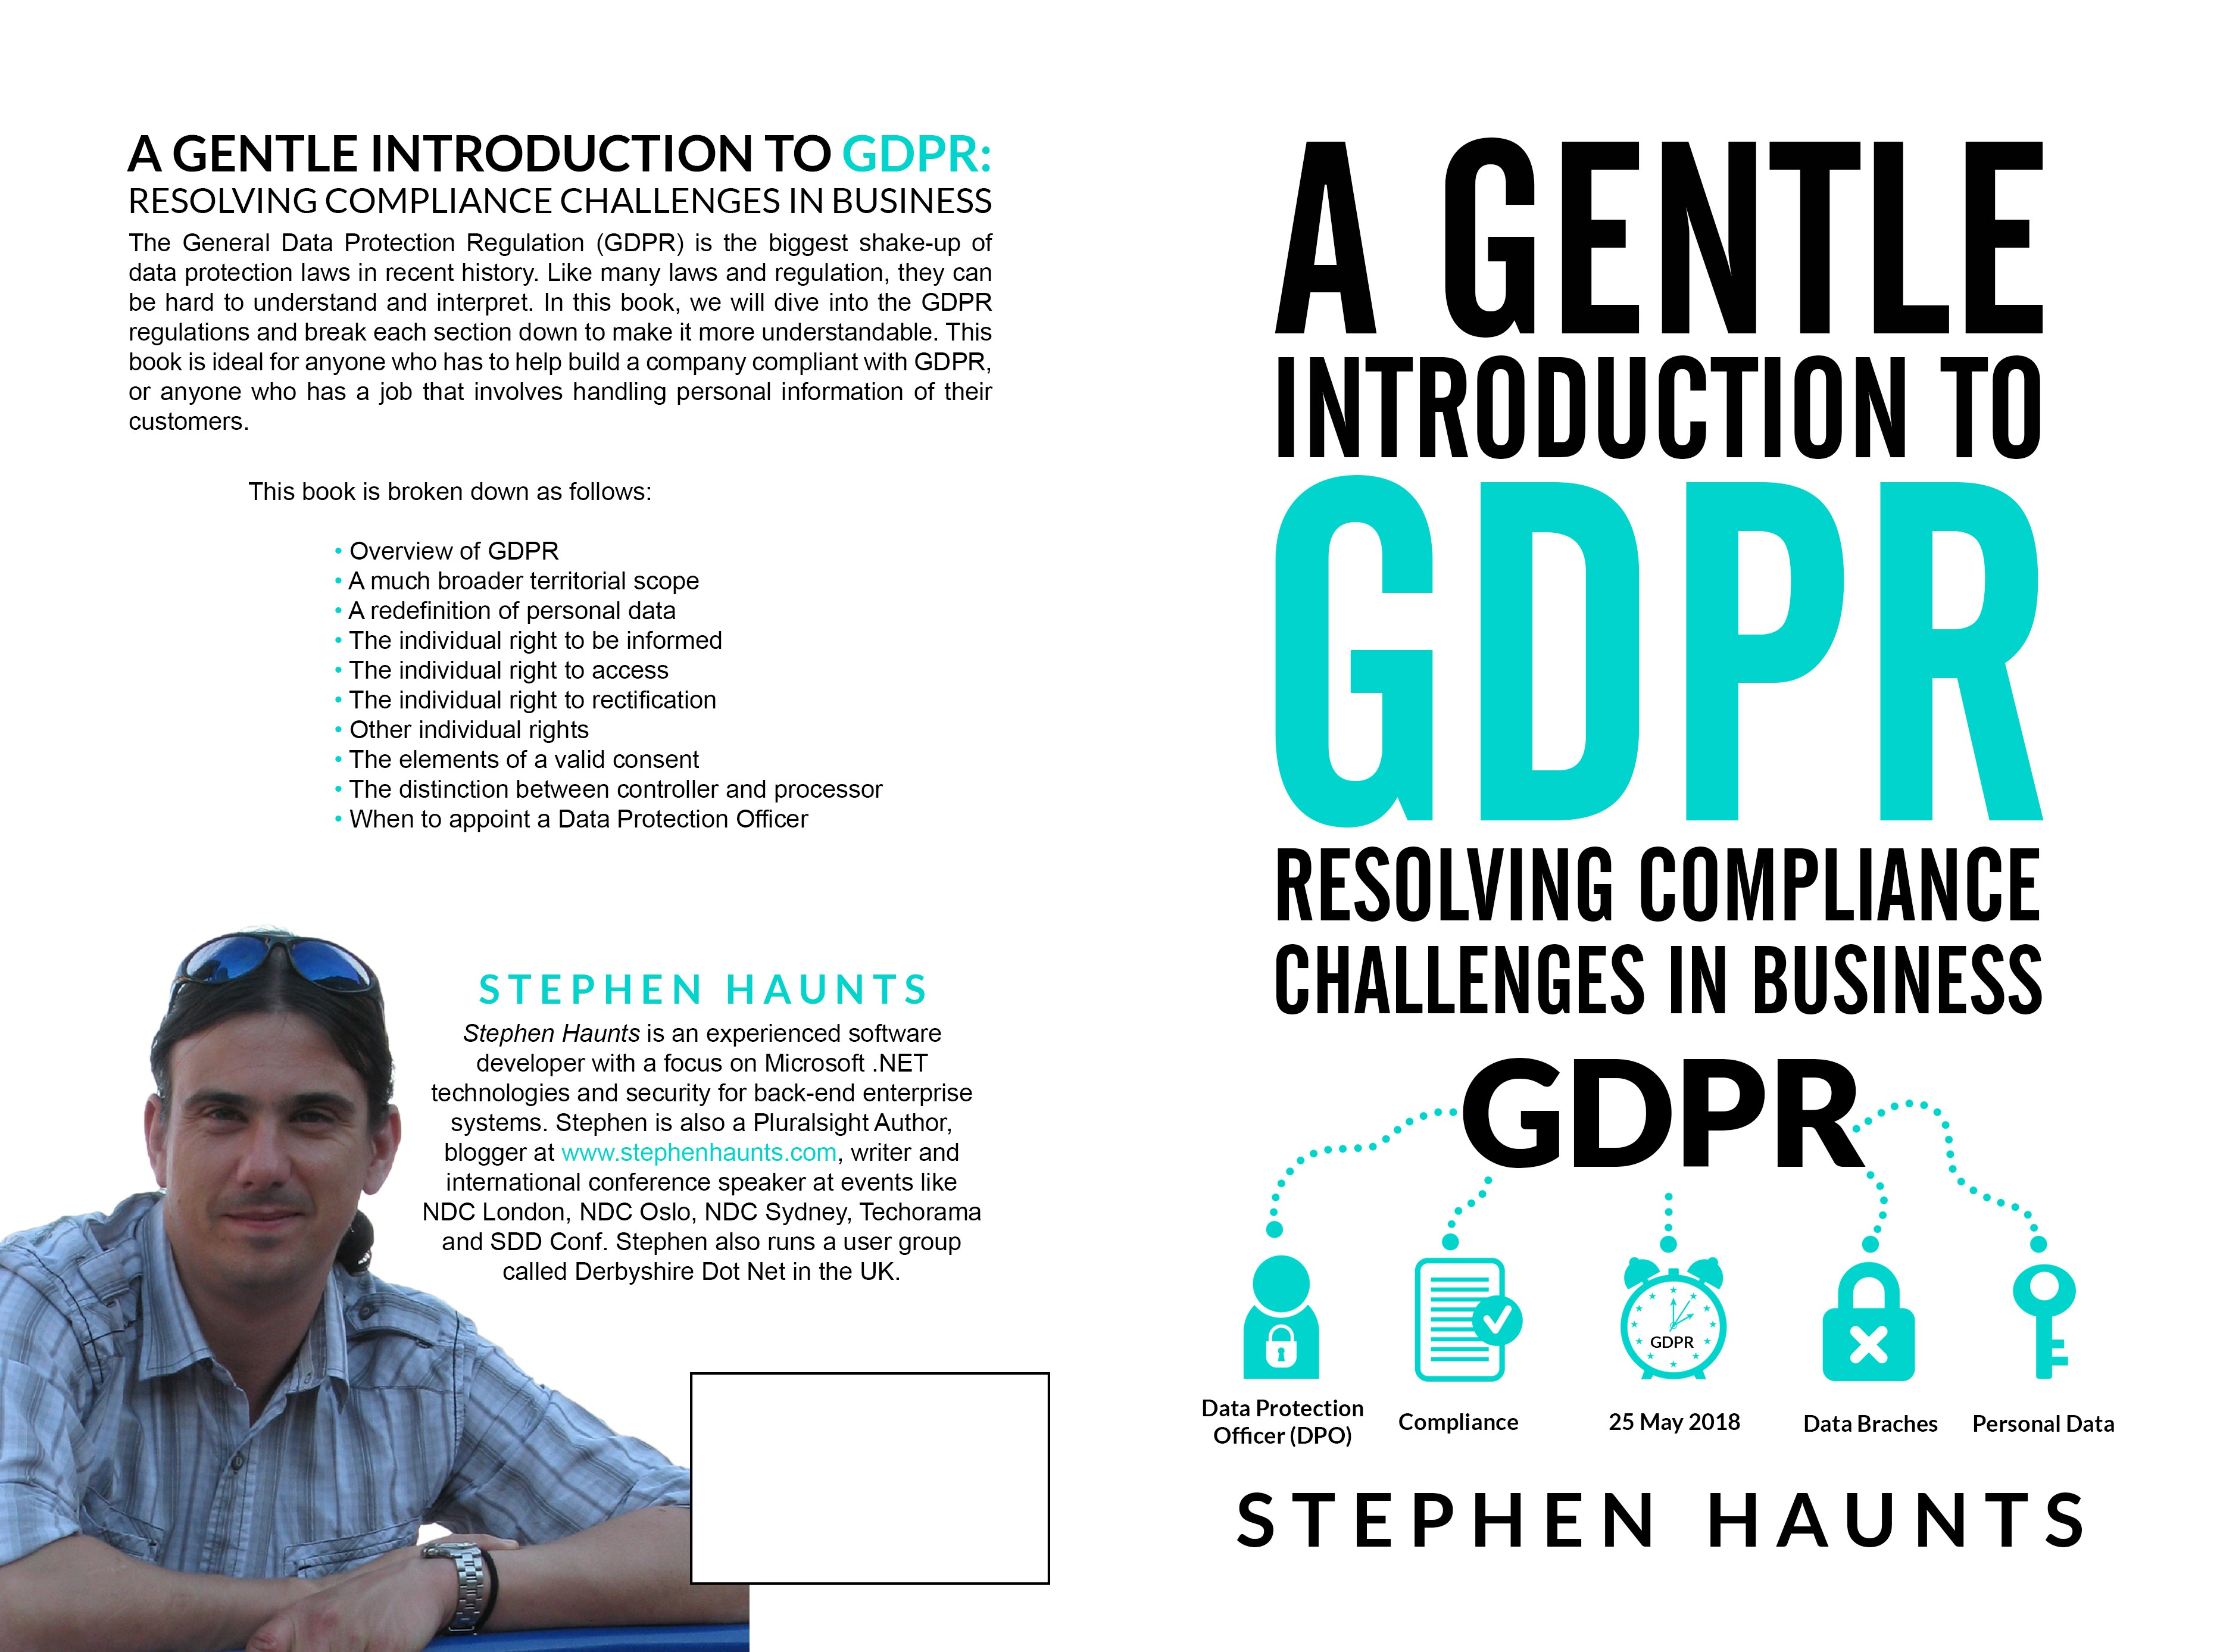 A Gentle Introduction to GDPR: Resolving Compliance Challenges in Business